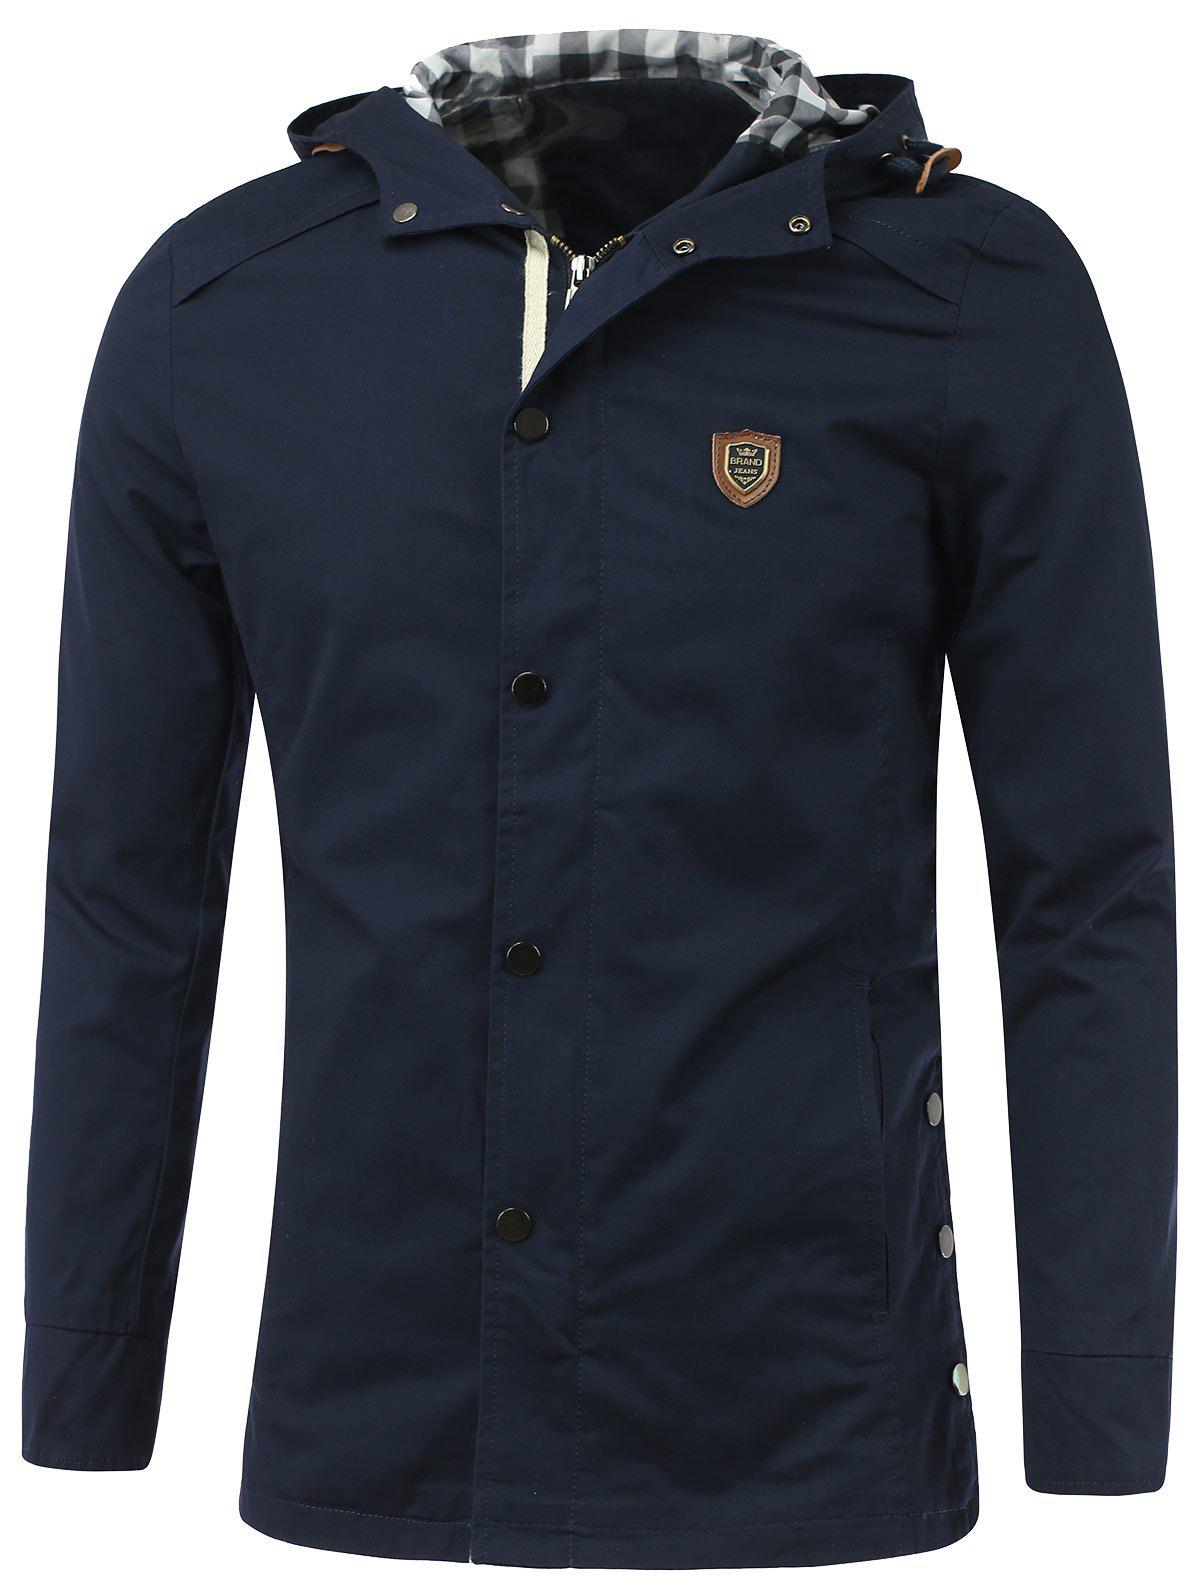 Manteau Badge Agrémentée Zip-Up Hooded - Bleu Saphir M